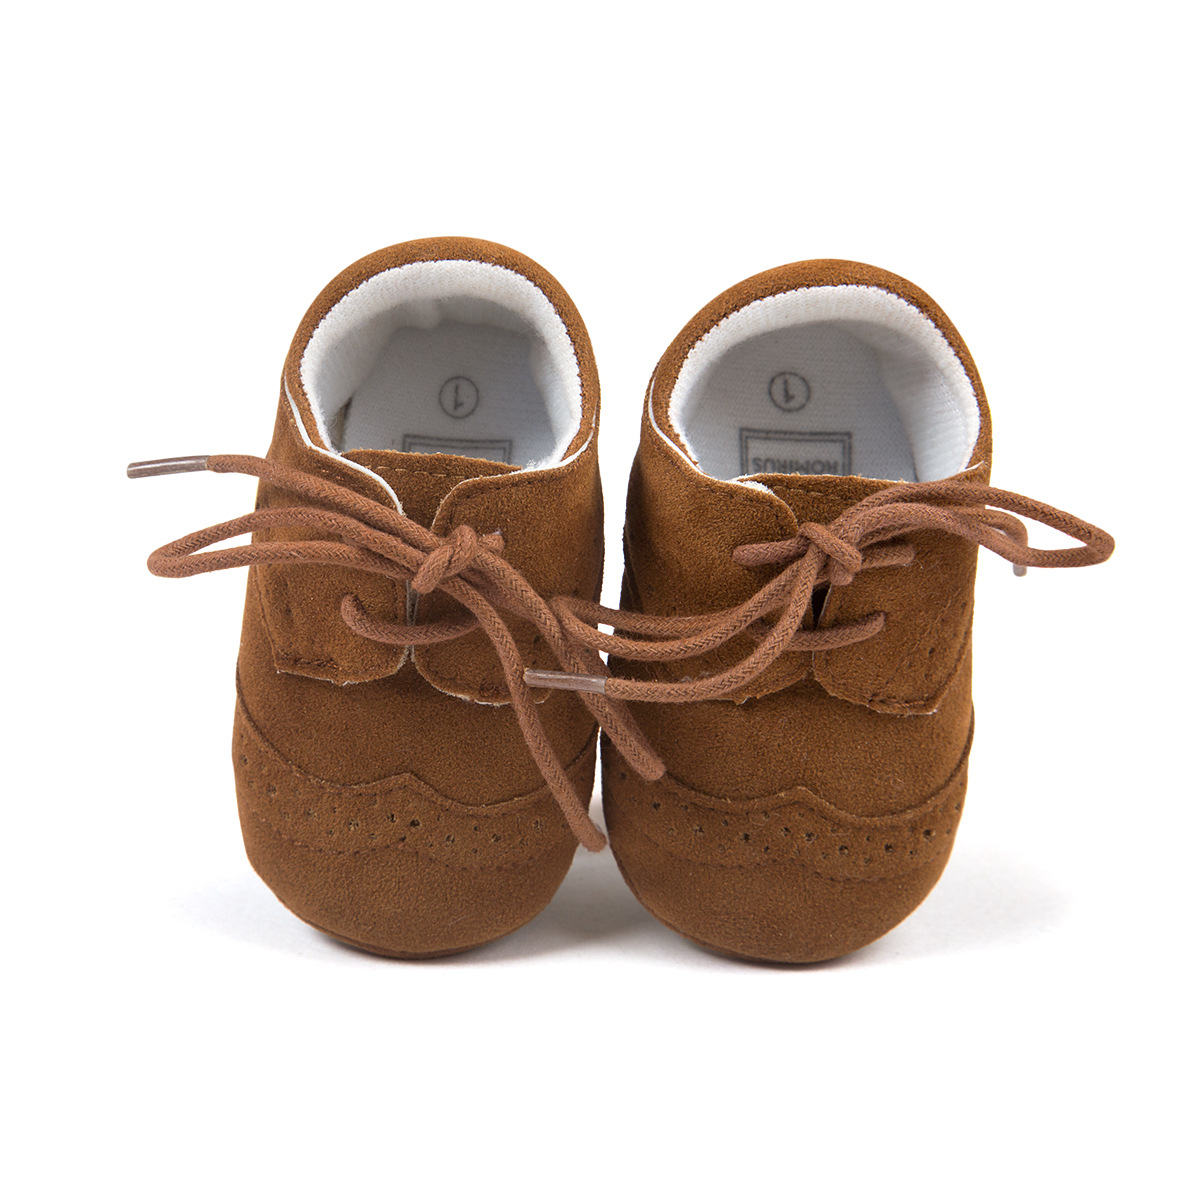 Old fashioned baby shoes 39